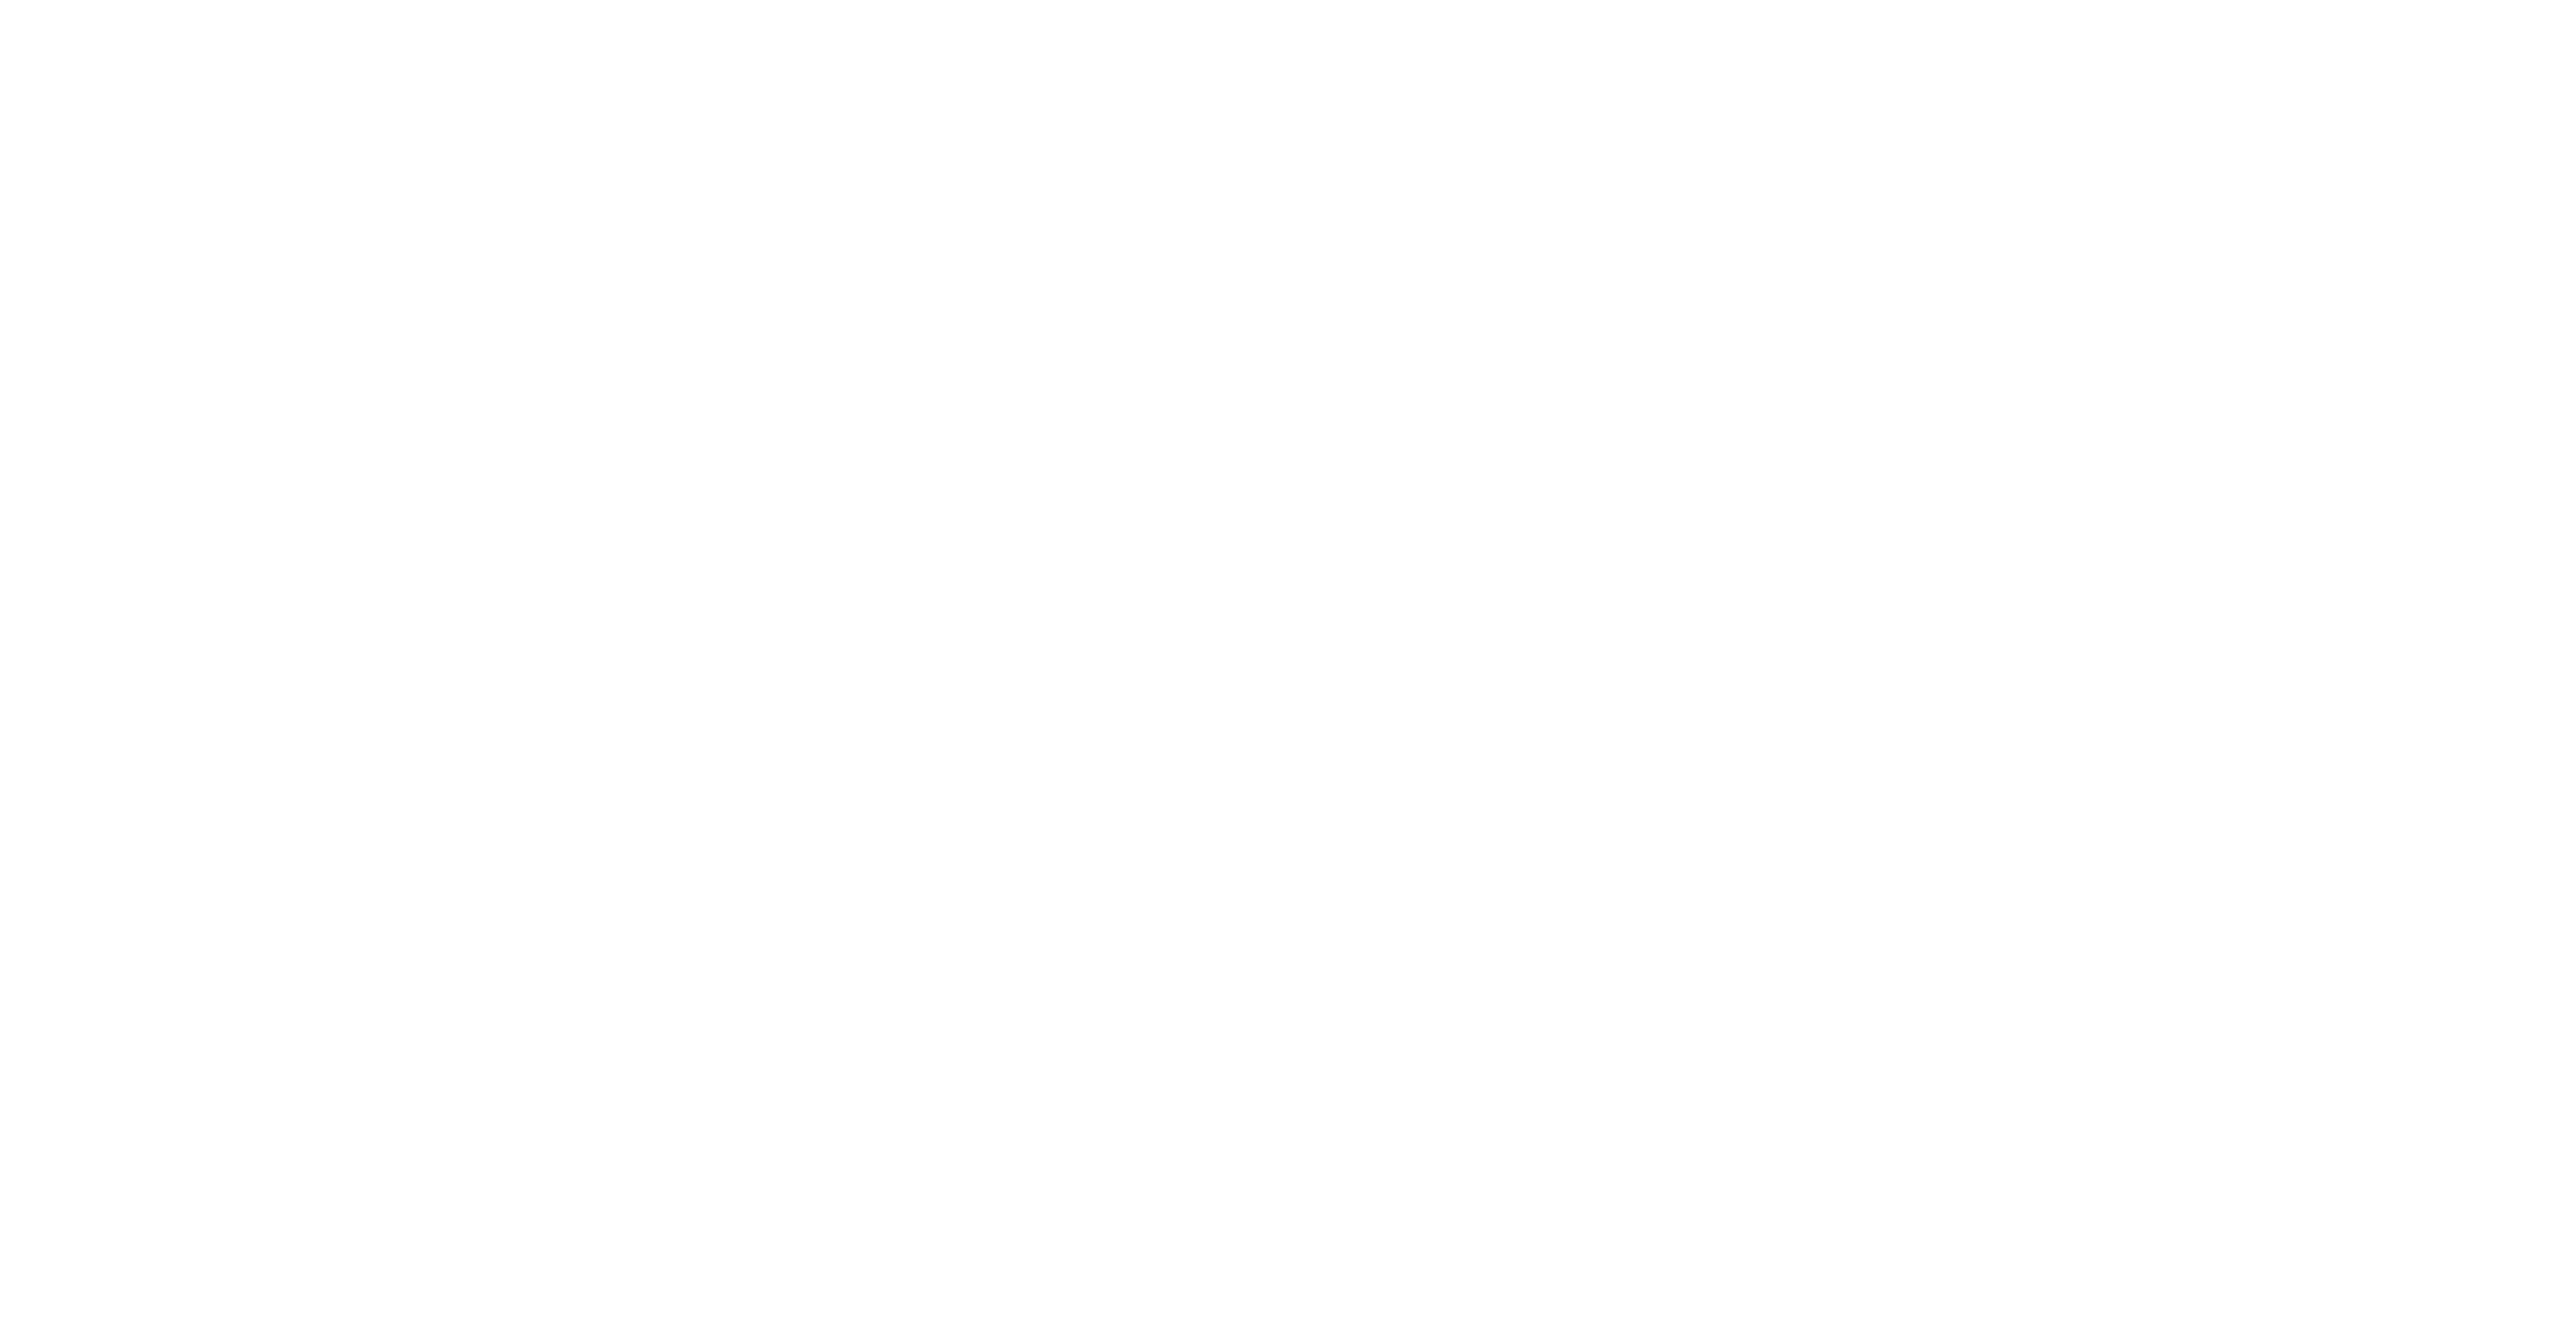 Logo+White+Clear+background